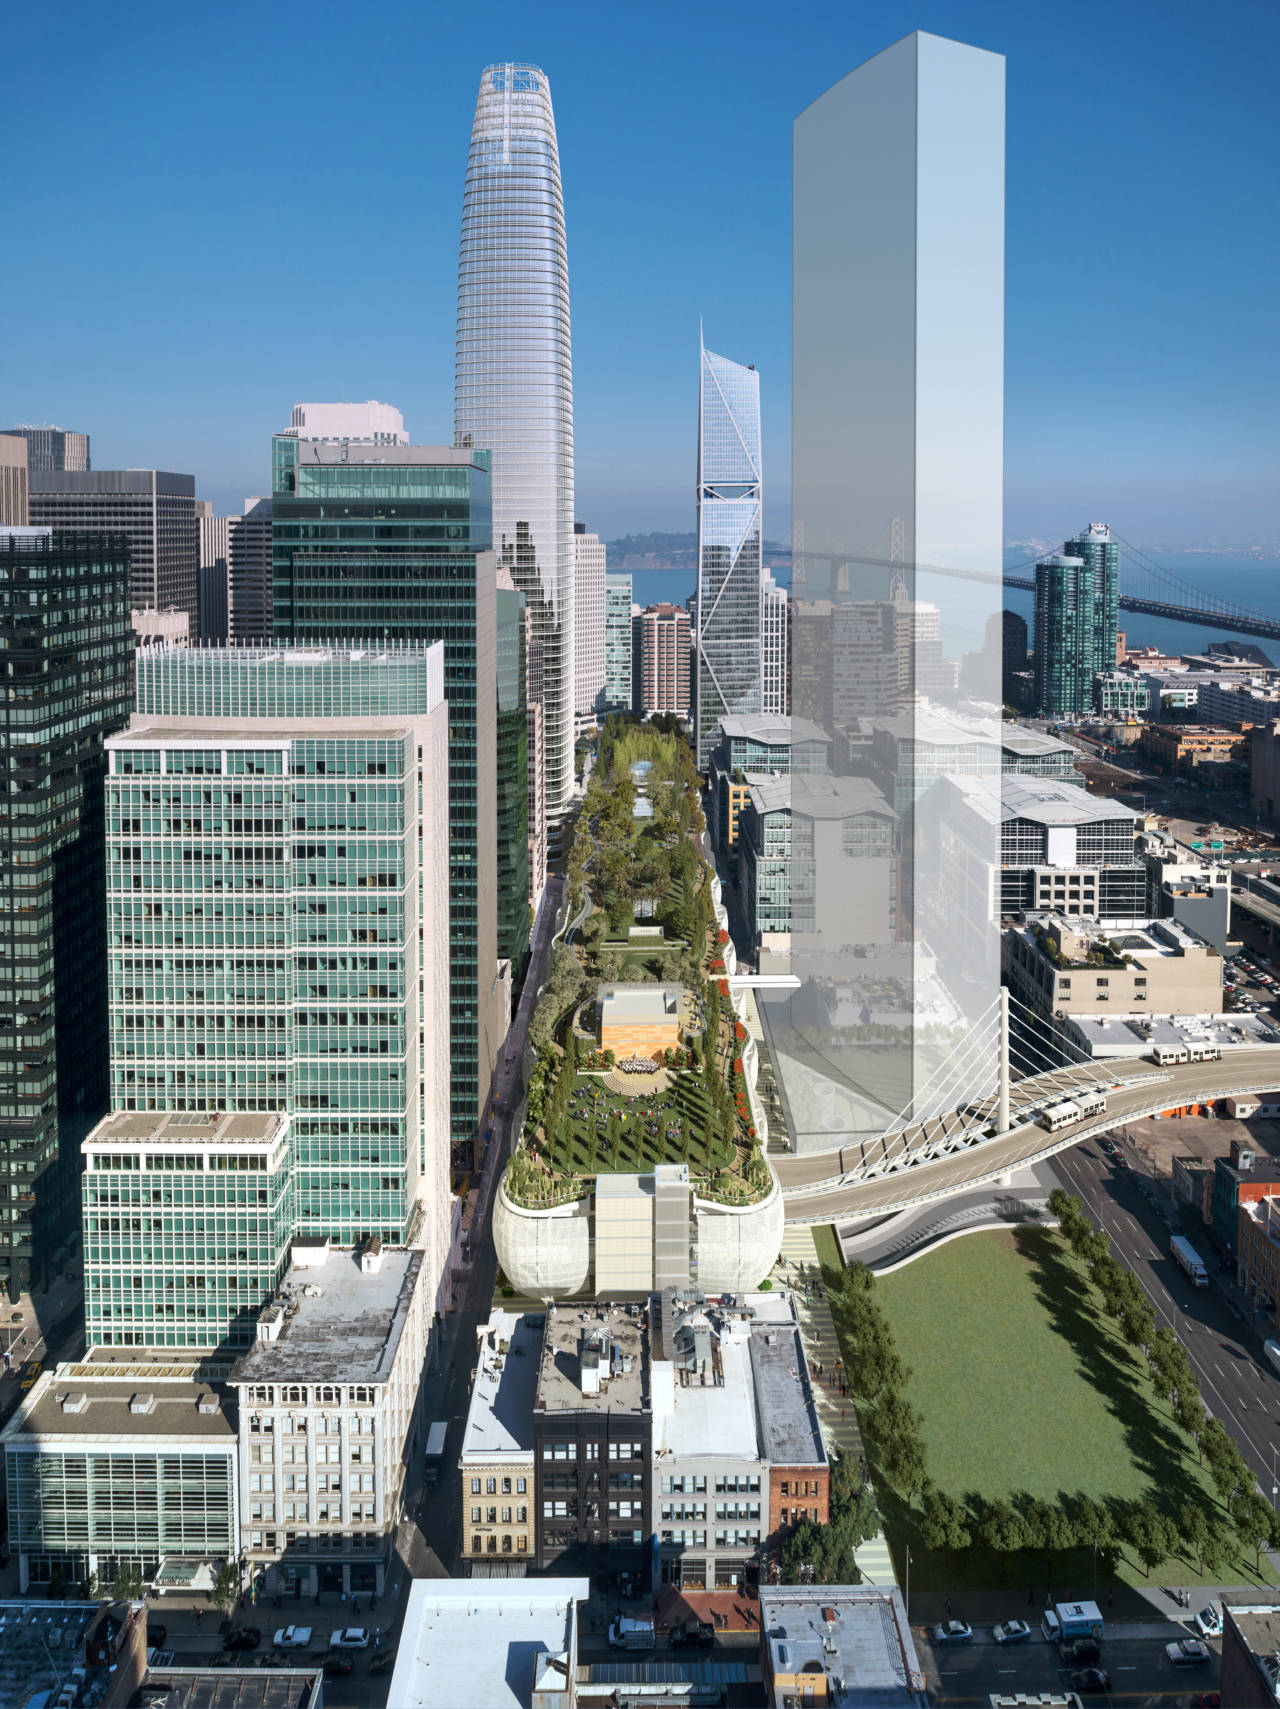 Rendering of finished facility showing rooftop park; project architect: Pelli Clarke Pelli. Image: TJPA